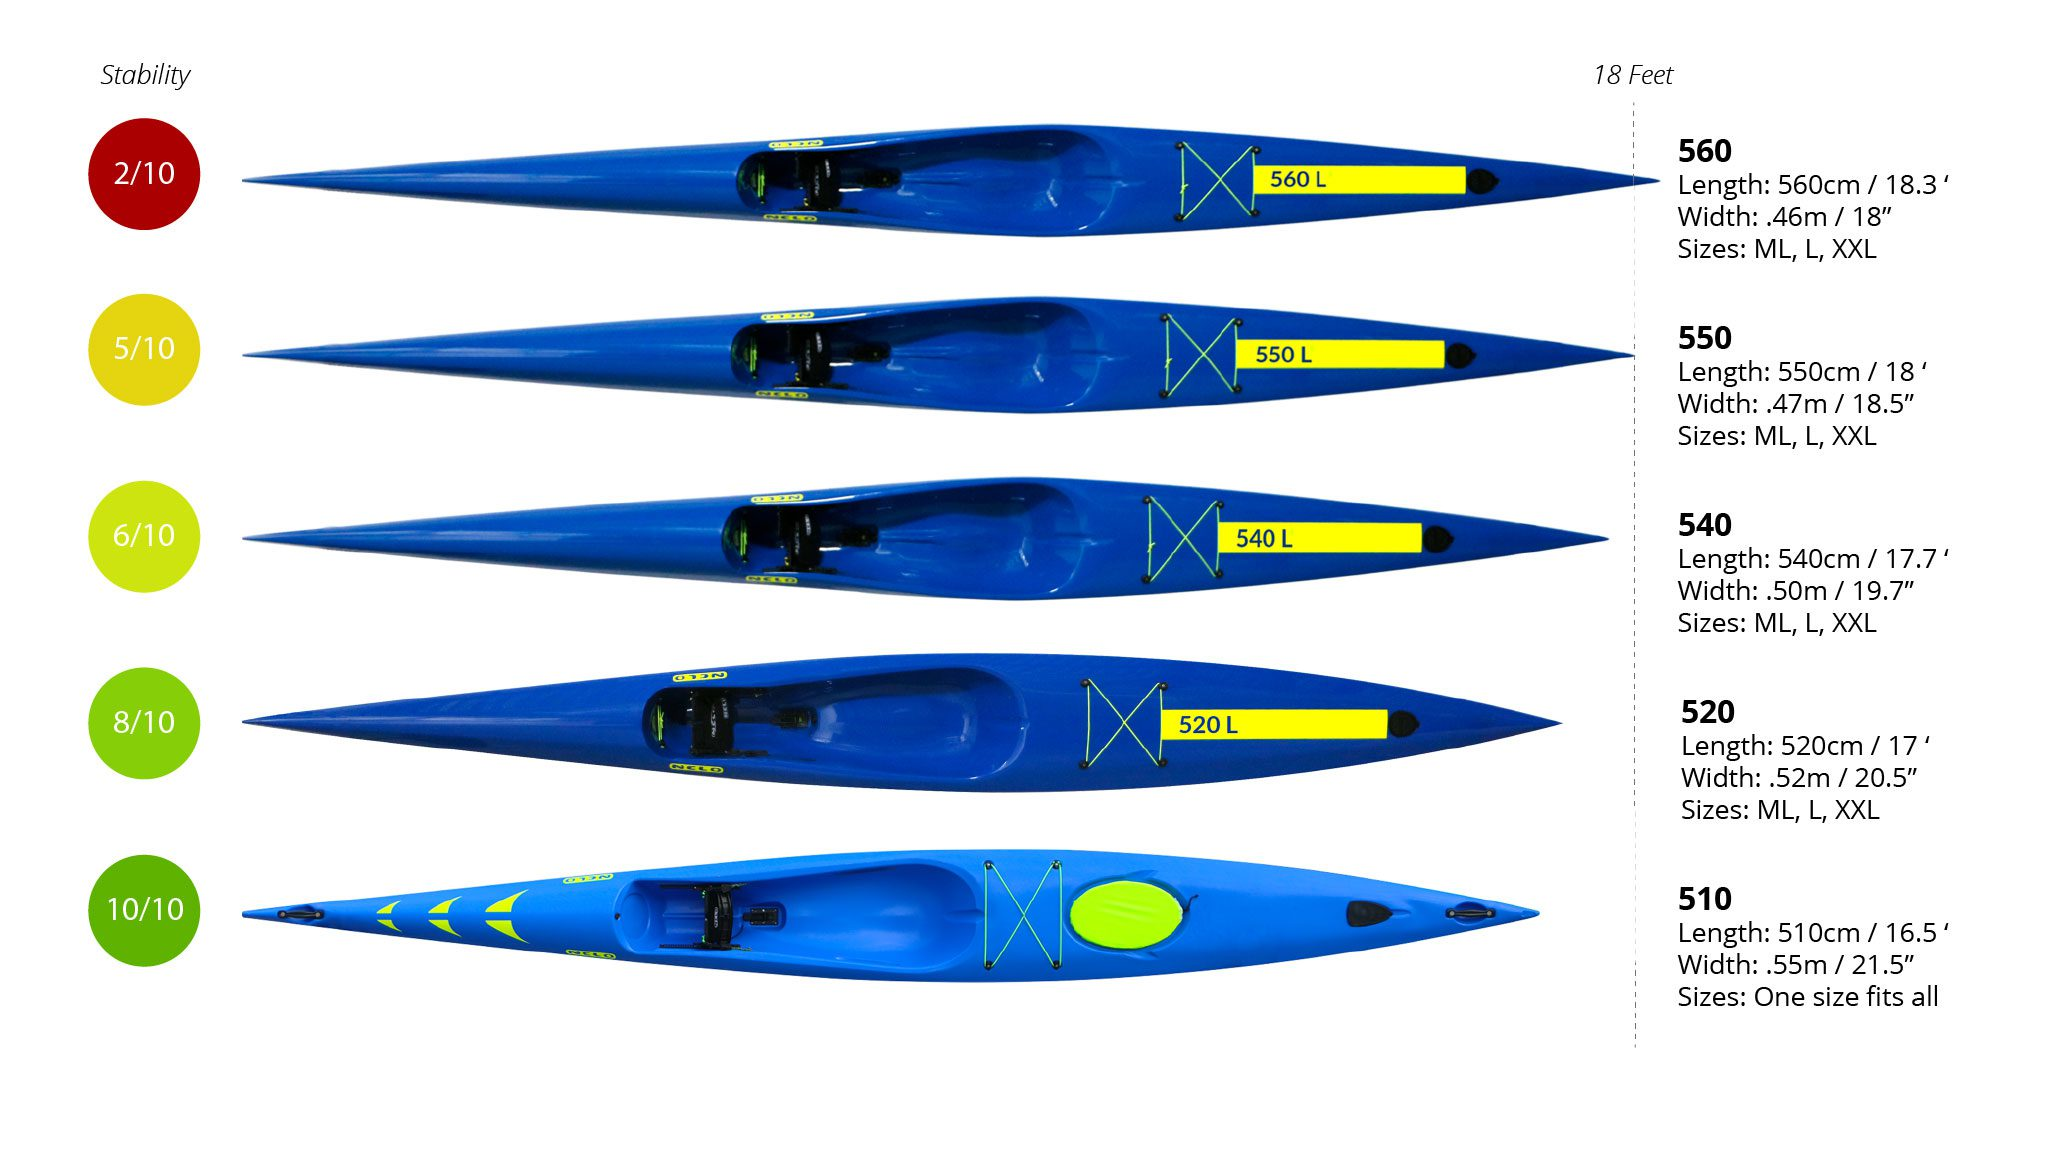 Nelo Surfski Chart - charts of specs and stability for 510, 520, 540, 550, 560